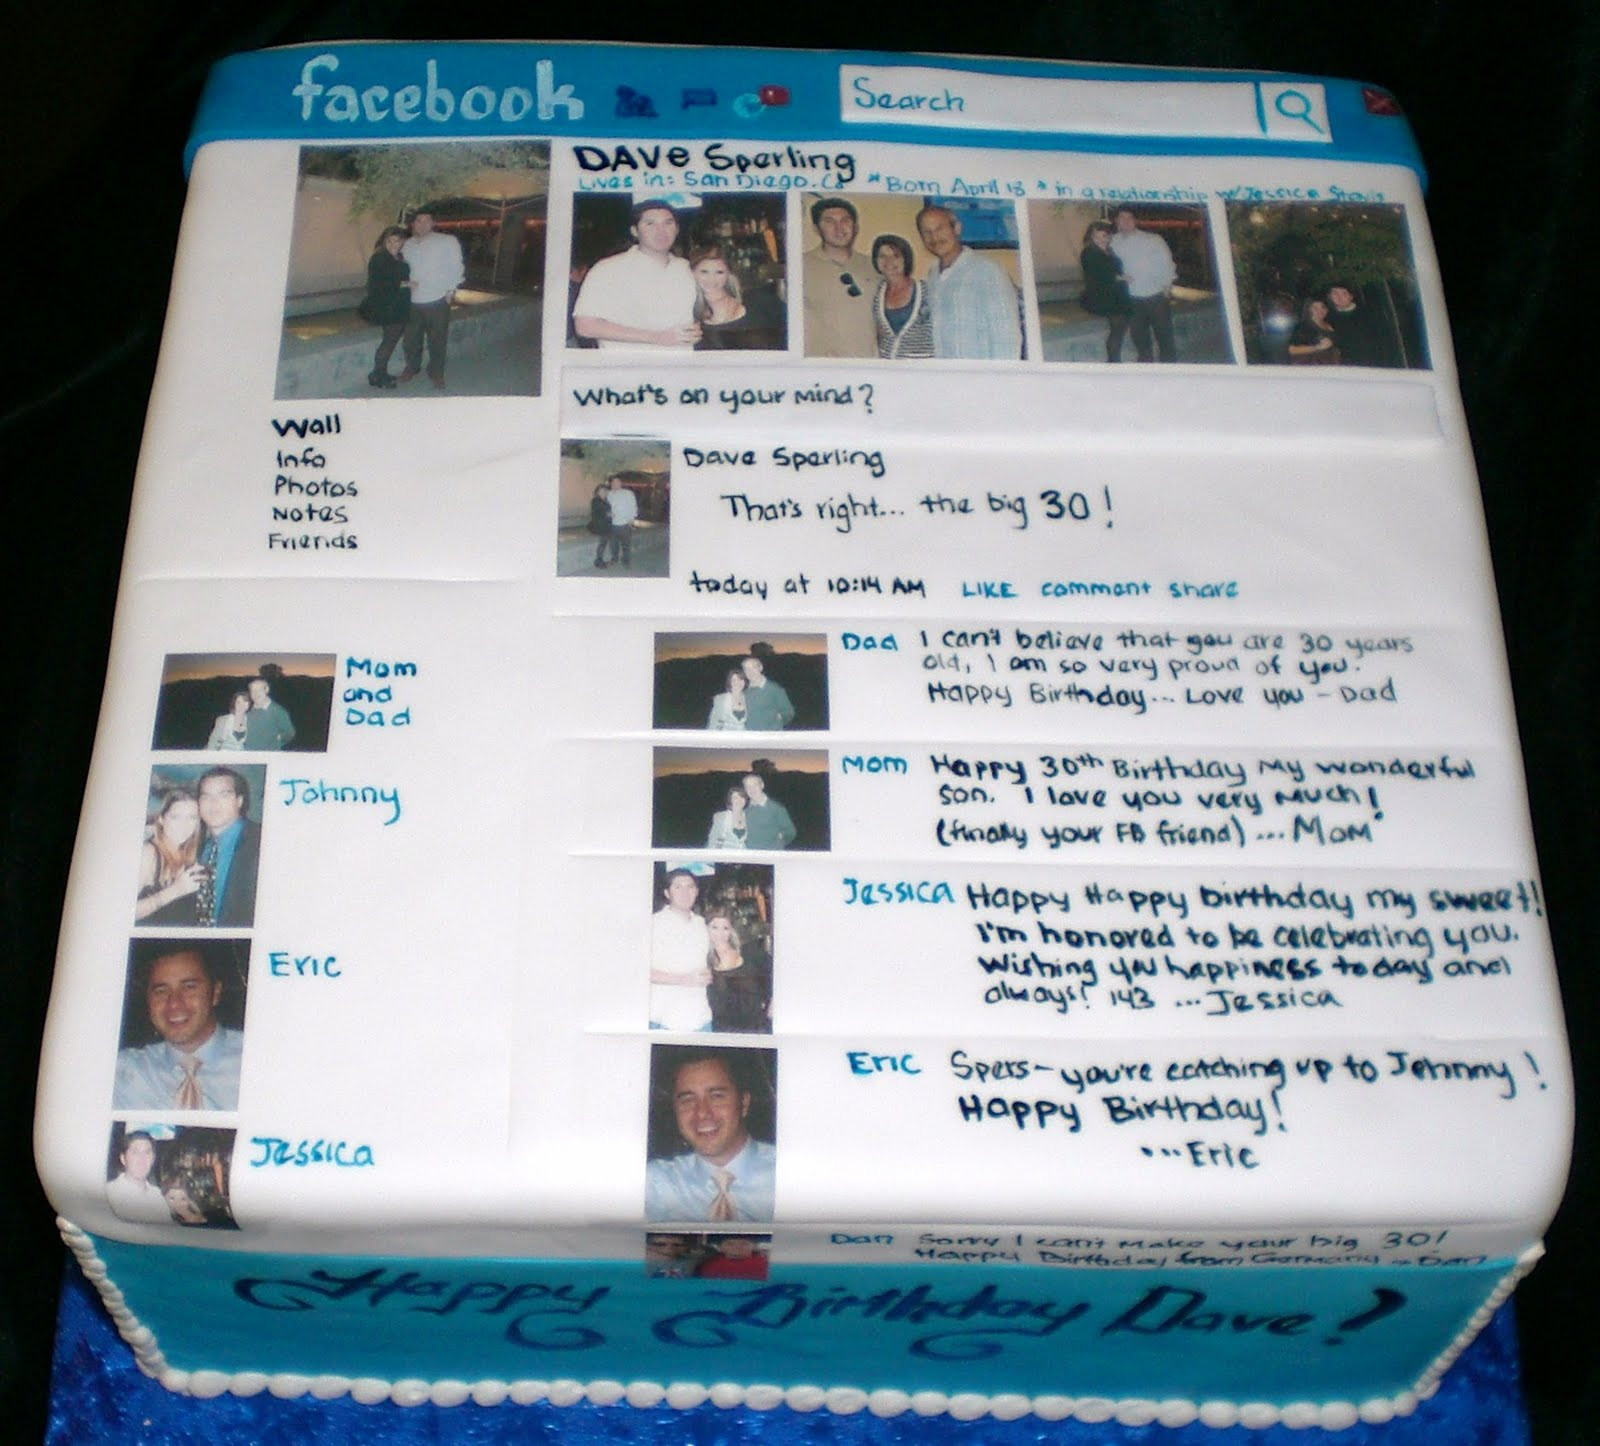 Best ideas about Facebook Birthday Cake . Save or Pin The Crimson Cake Blog Cake Now.